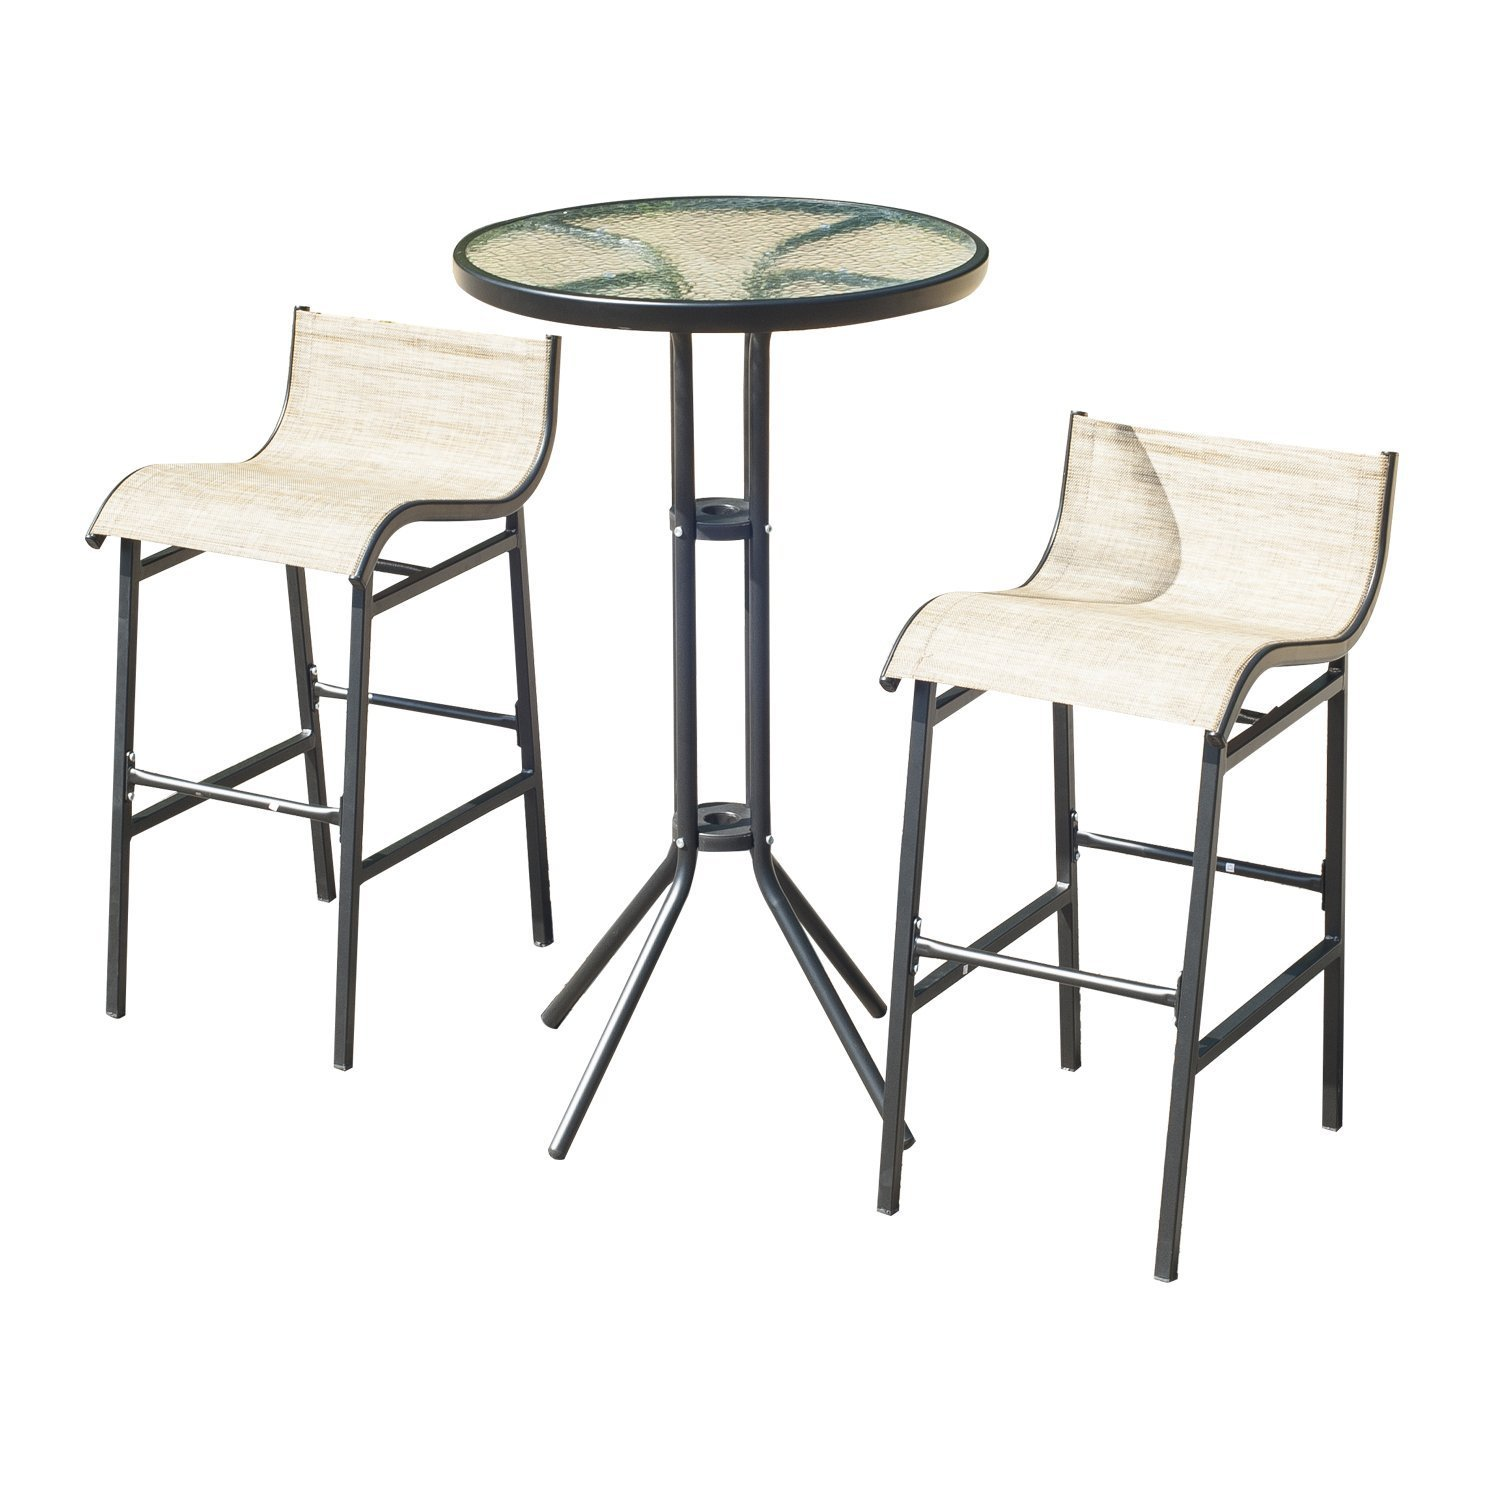 Outsunny 3 pc Outdoor Patio Pub Bistro Table & Chairs Set by Outsunny (Image #4)